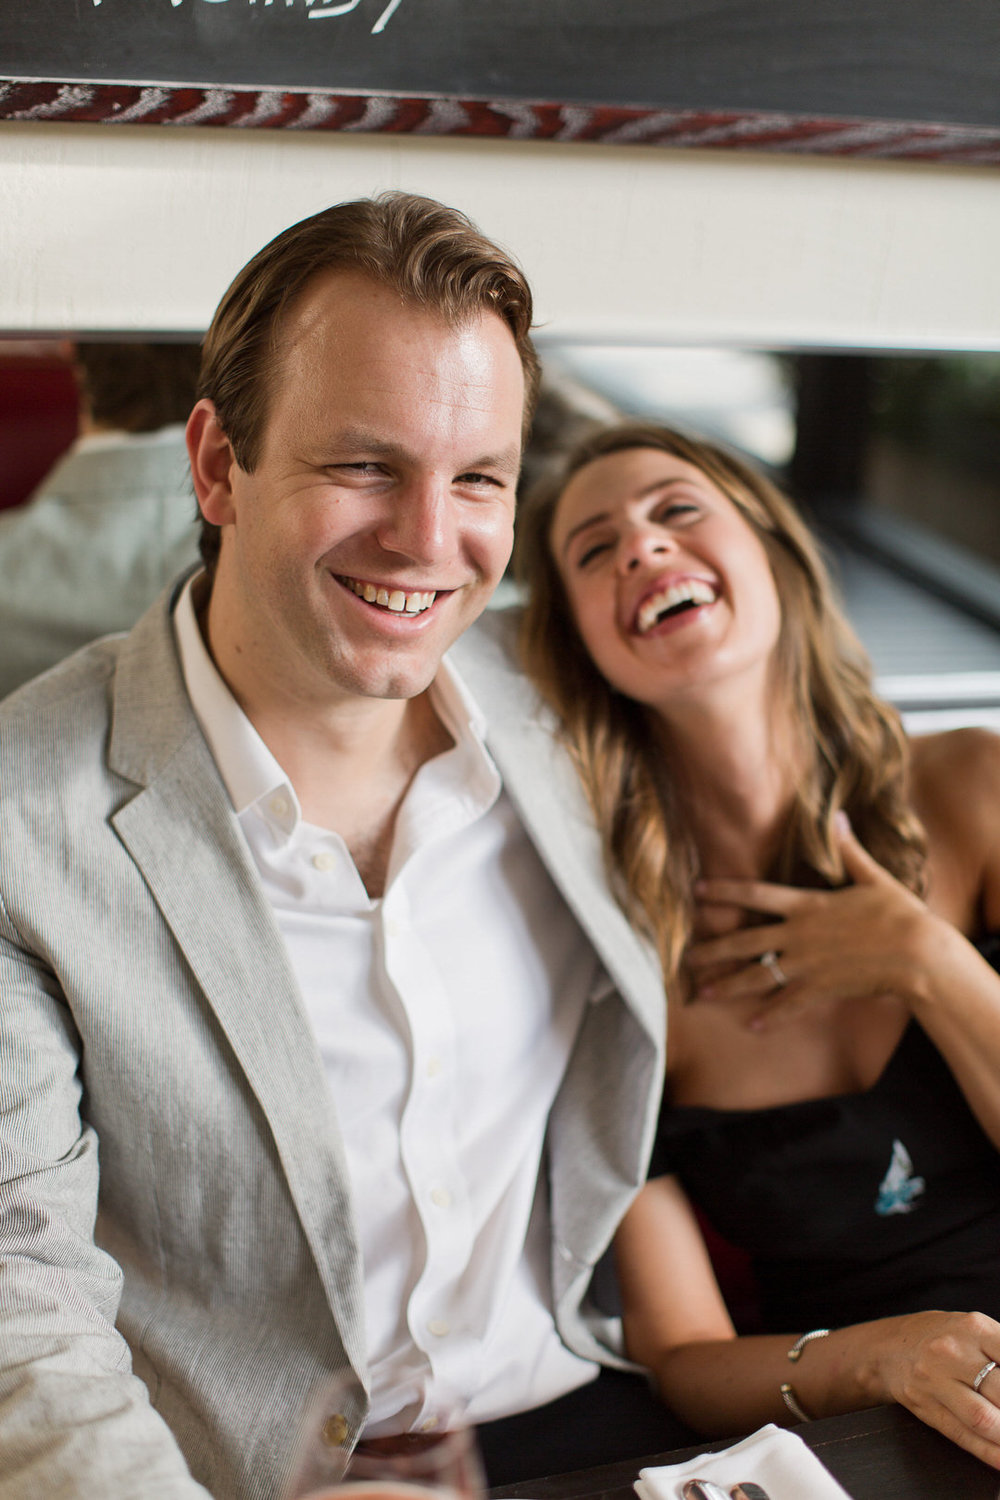 Melissa Kruse Photography - Meghan & Pete Engagement Photos-119.jpg